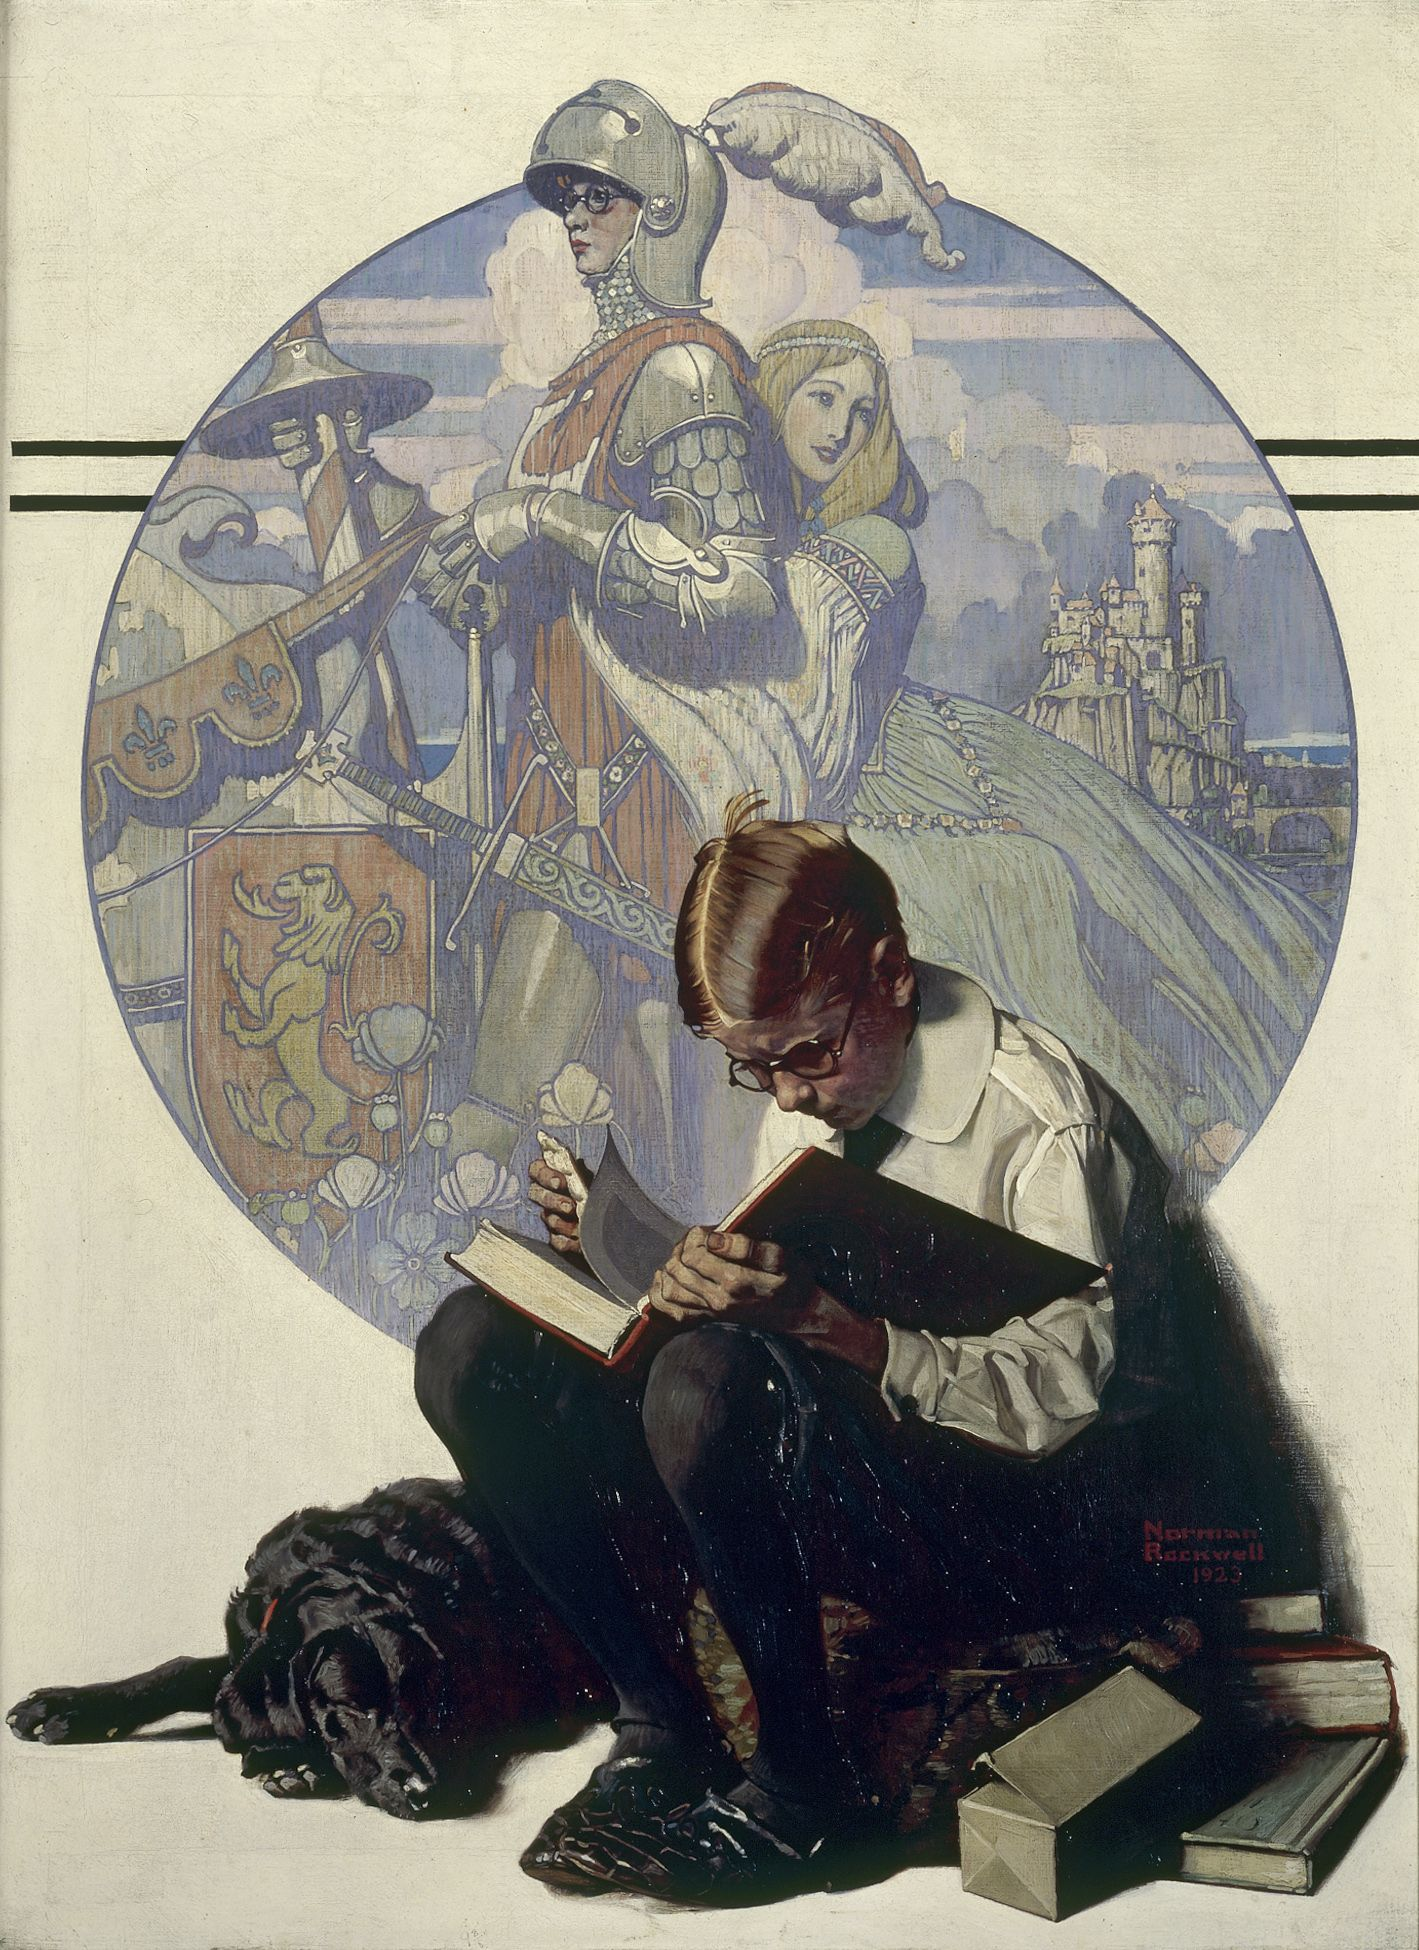 Boy Reading Adventure Story 1923 by Norman ROCKWELL Collection